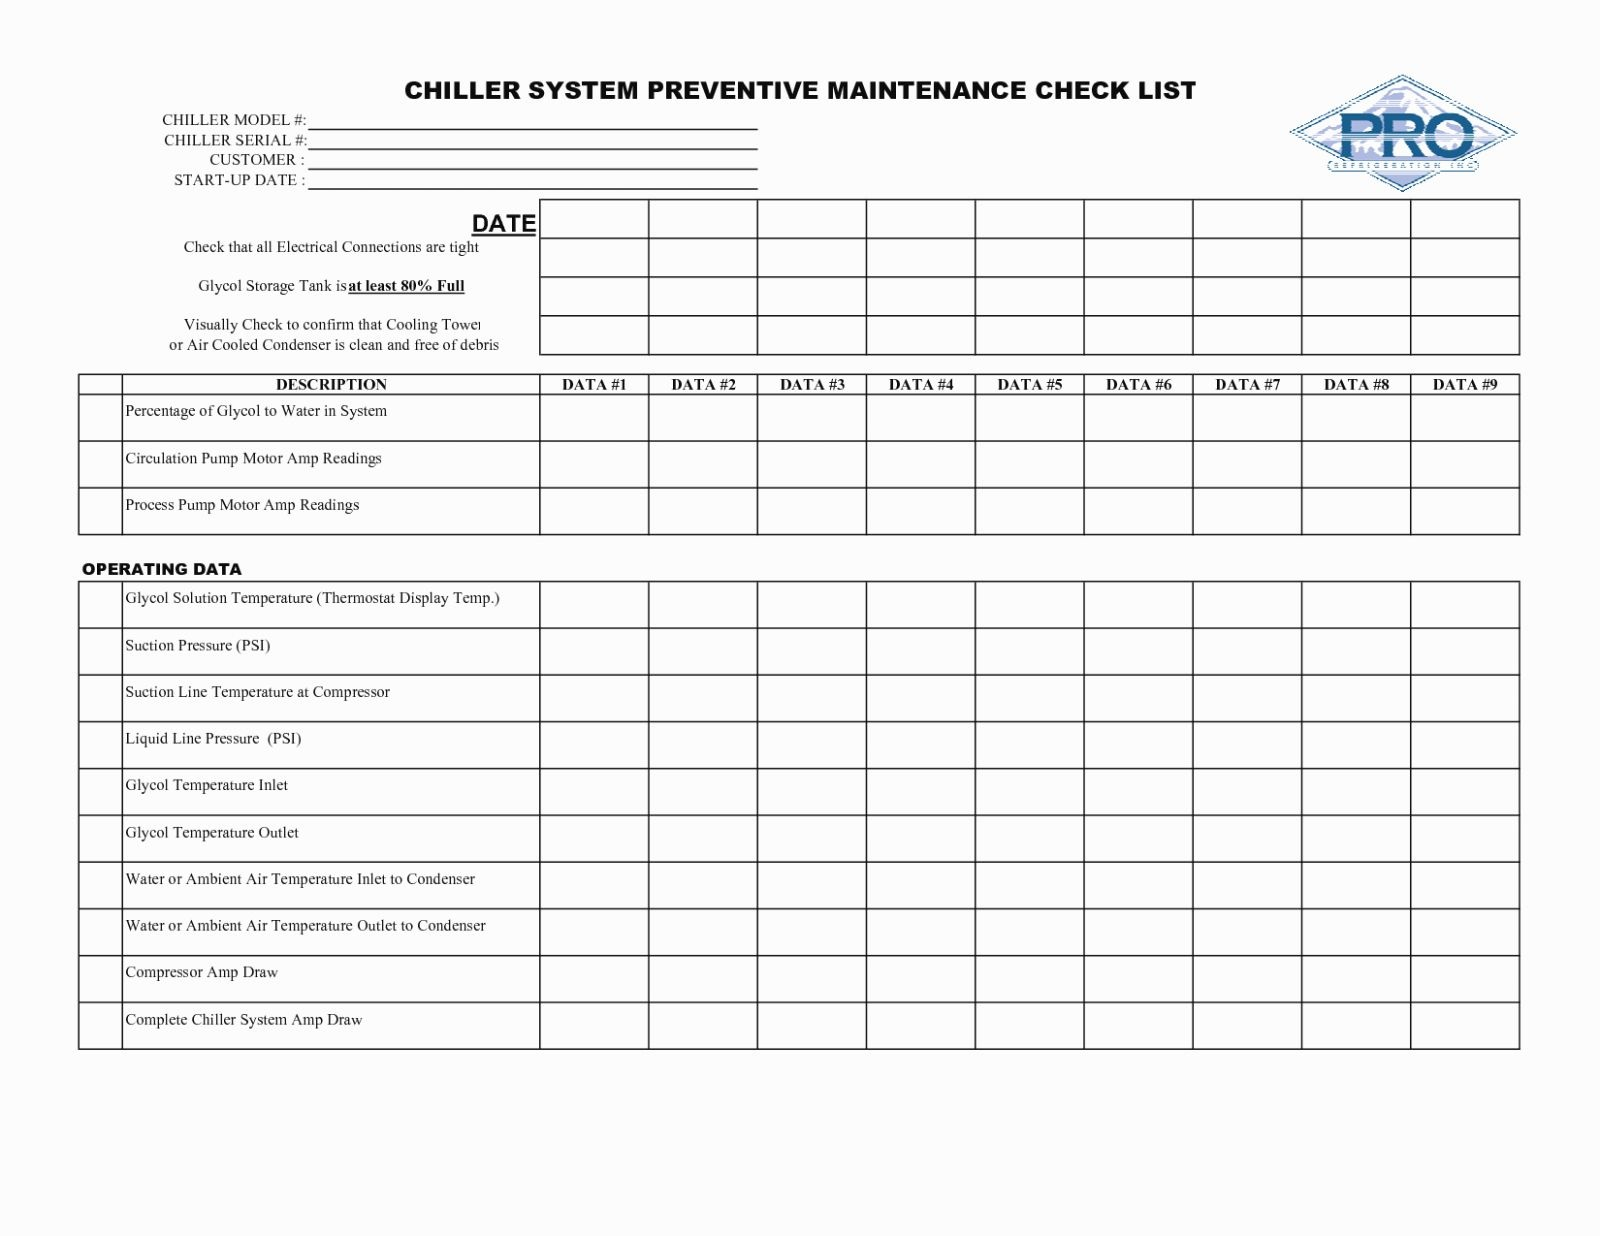 000 Remarkable Preventive Maintenance Plan Template Picture  Electrical Equipment Sample Format OfFull